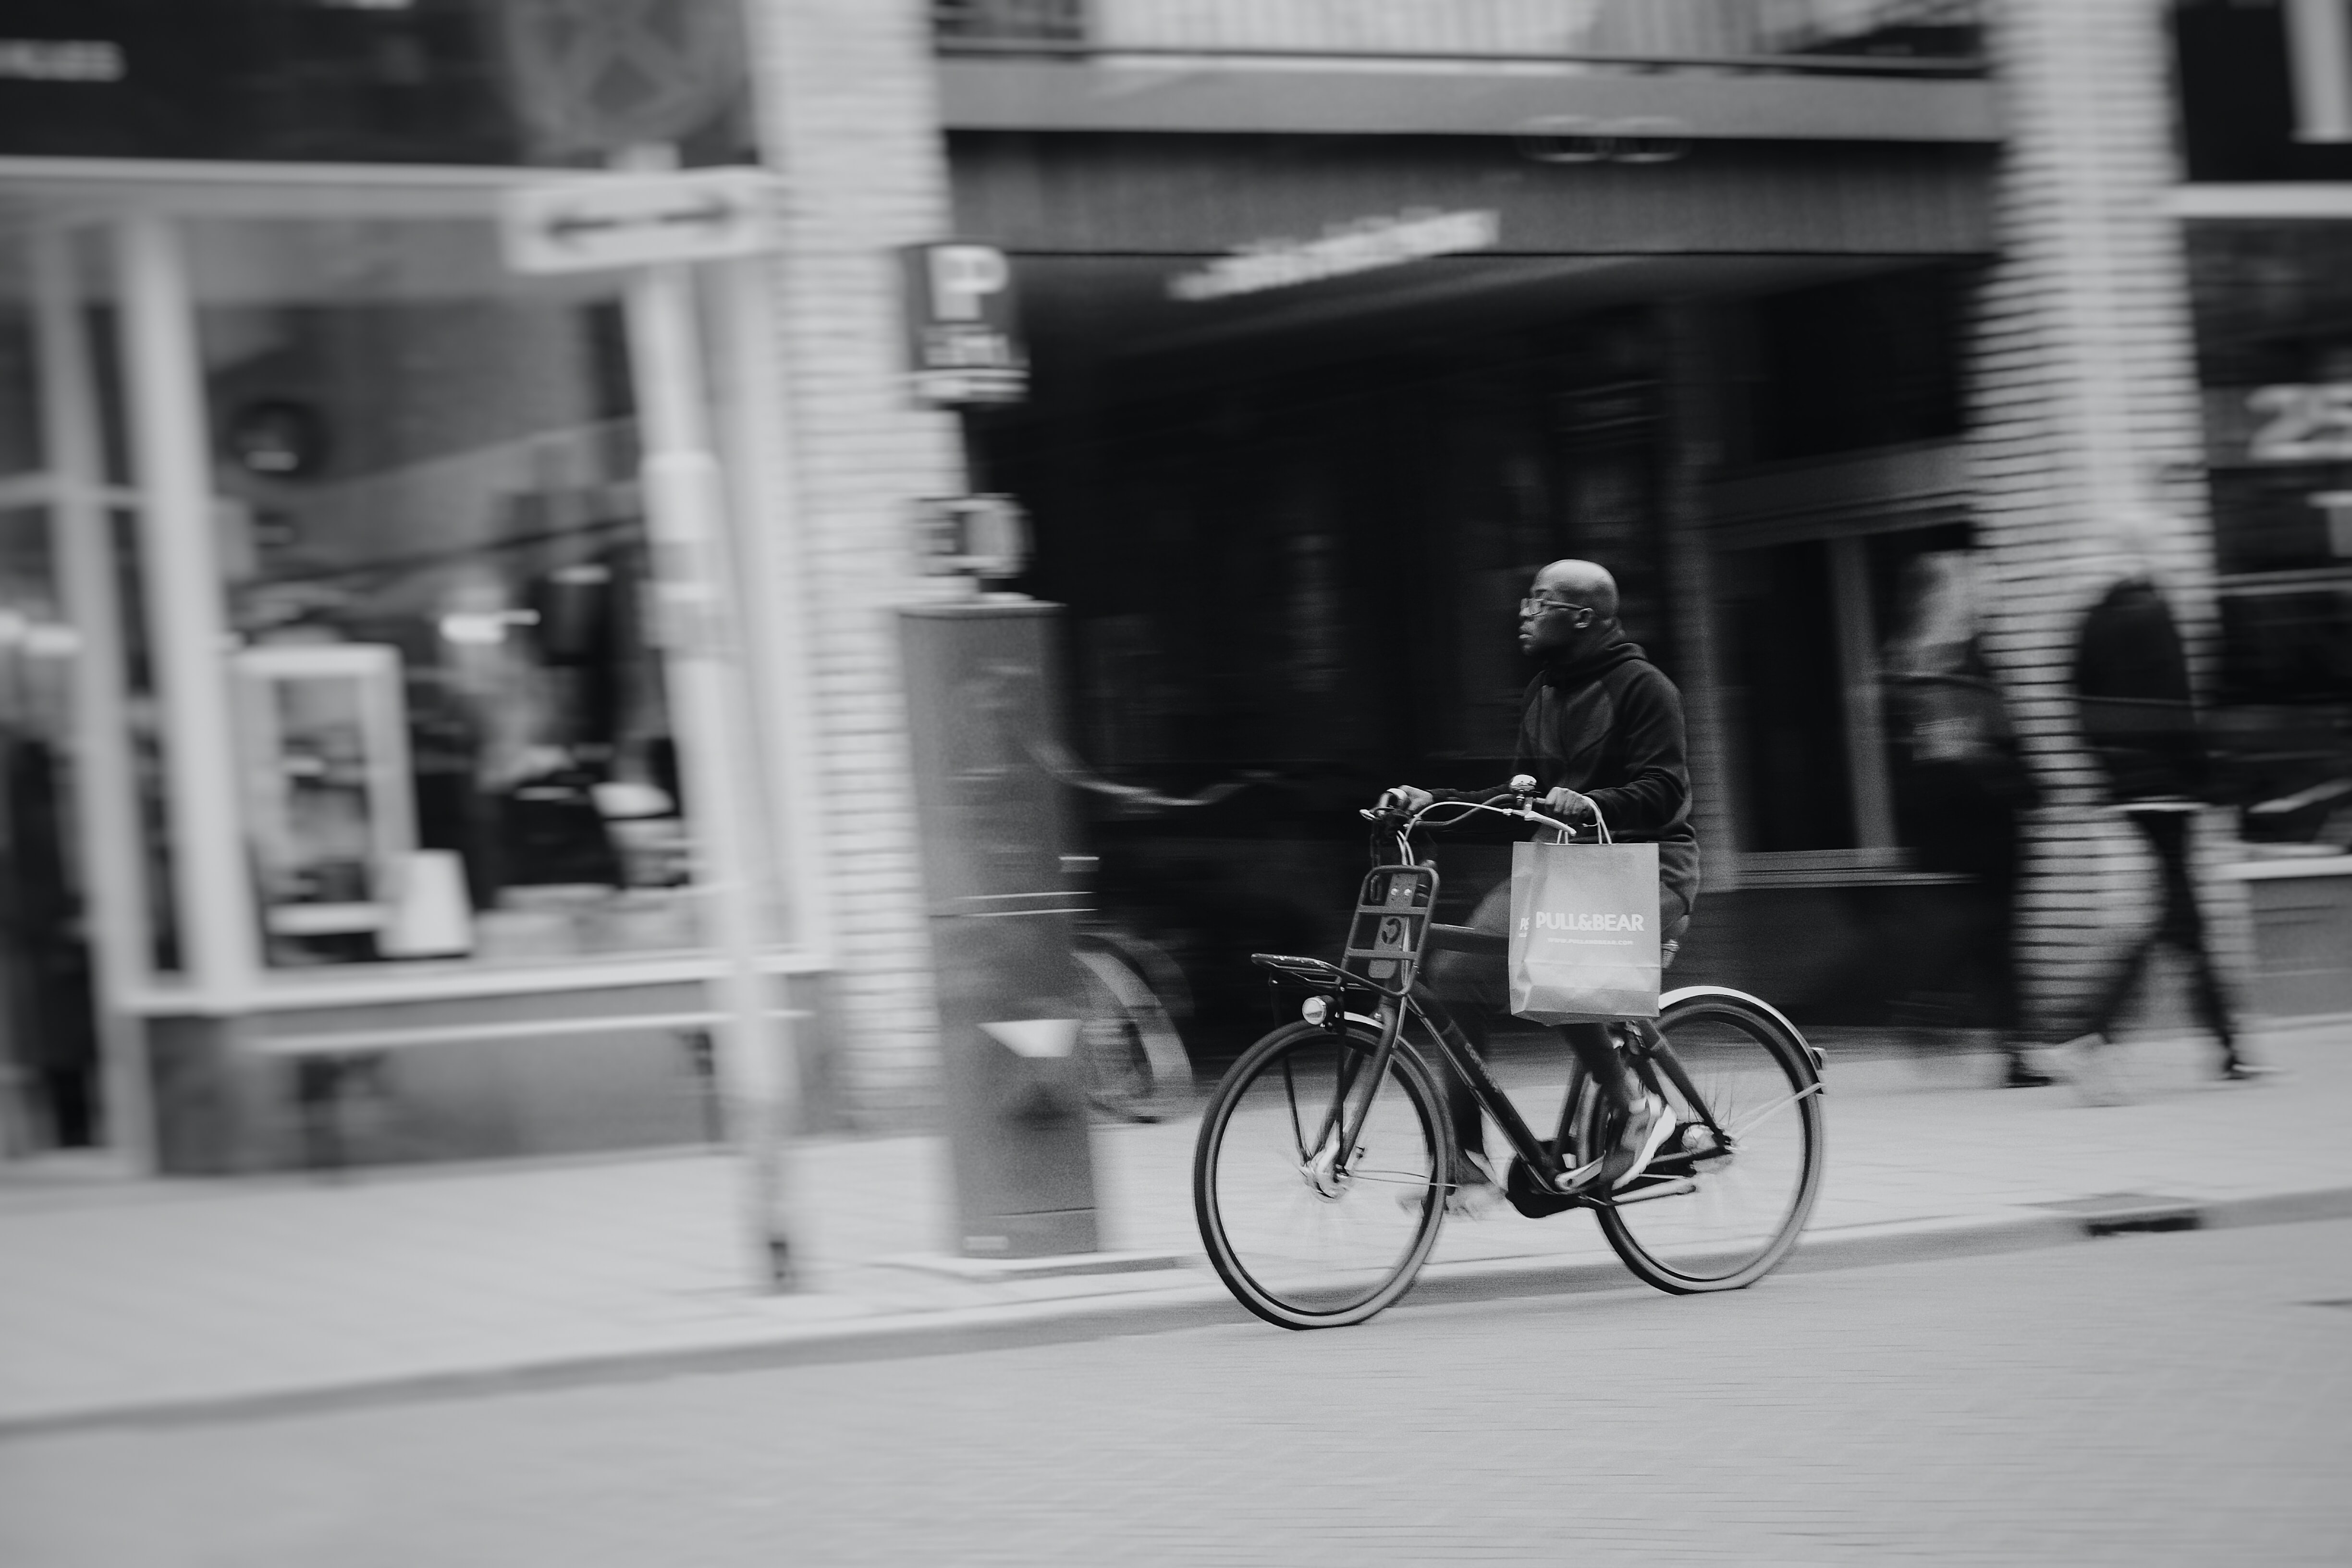 man riding bicycle on road near stores